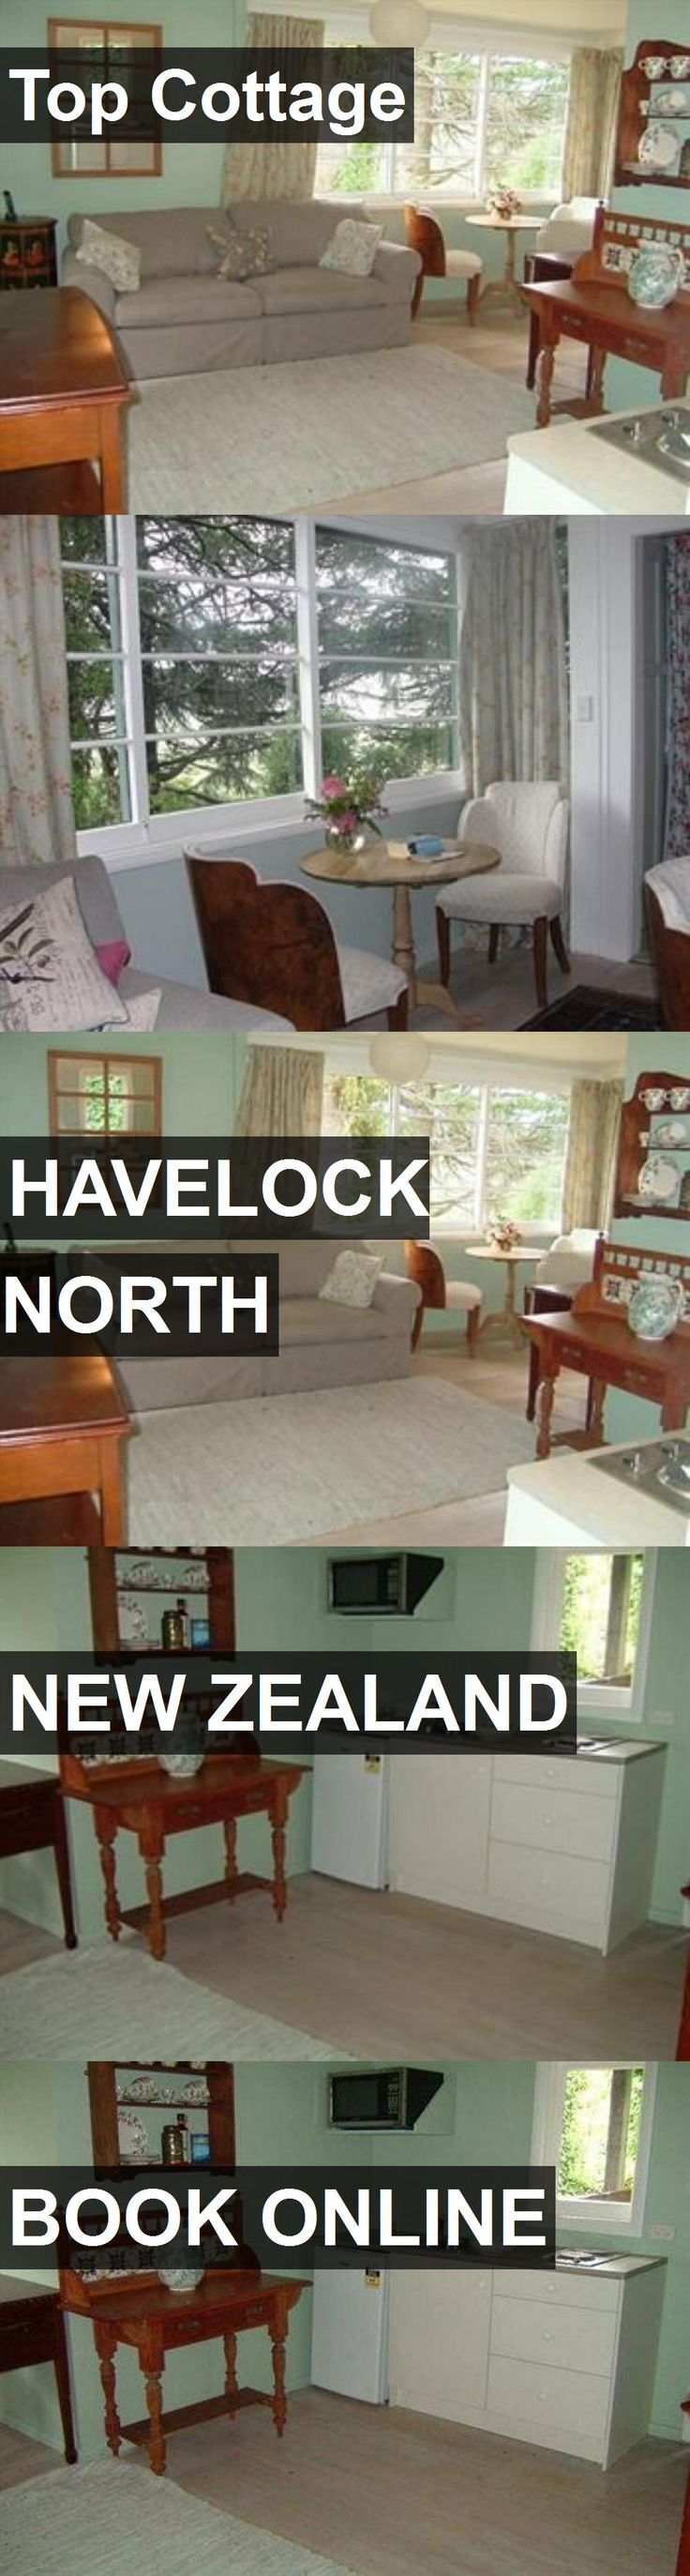 Hotel Top Cottage in Havelock North, New Zealand. For more information, photos, reviews and best prices please follow the link. #NewZealand #HavelockNorth #TopCottage #hotel #travel #vacation